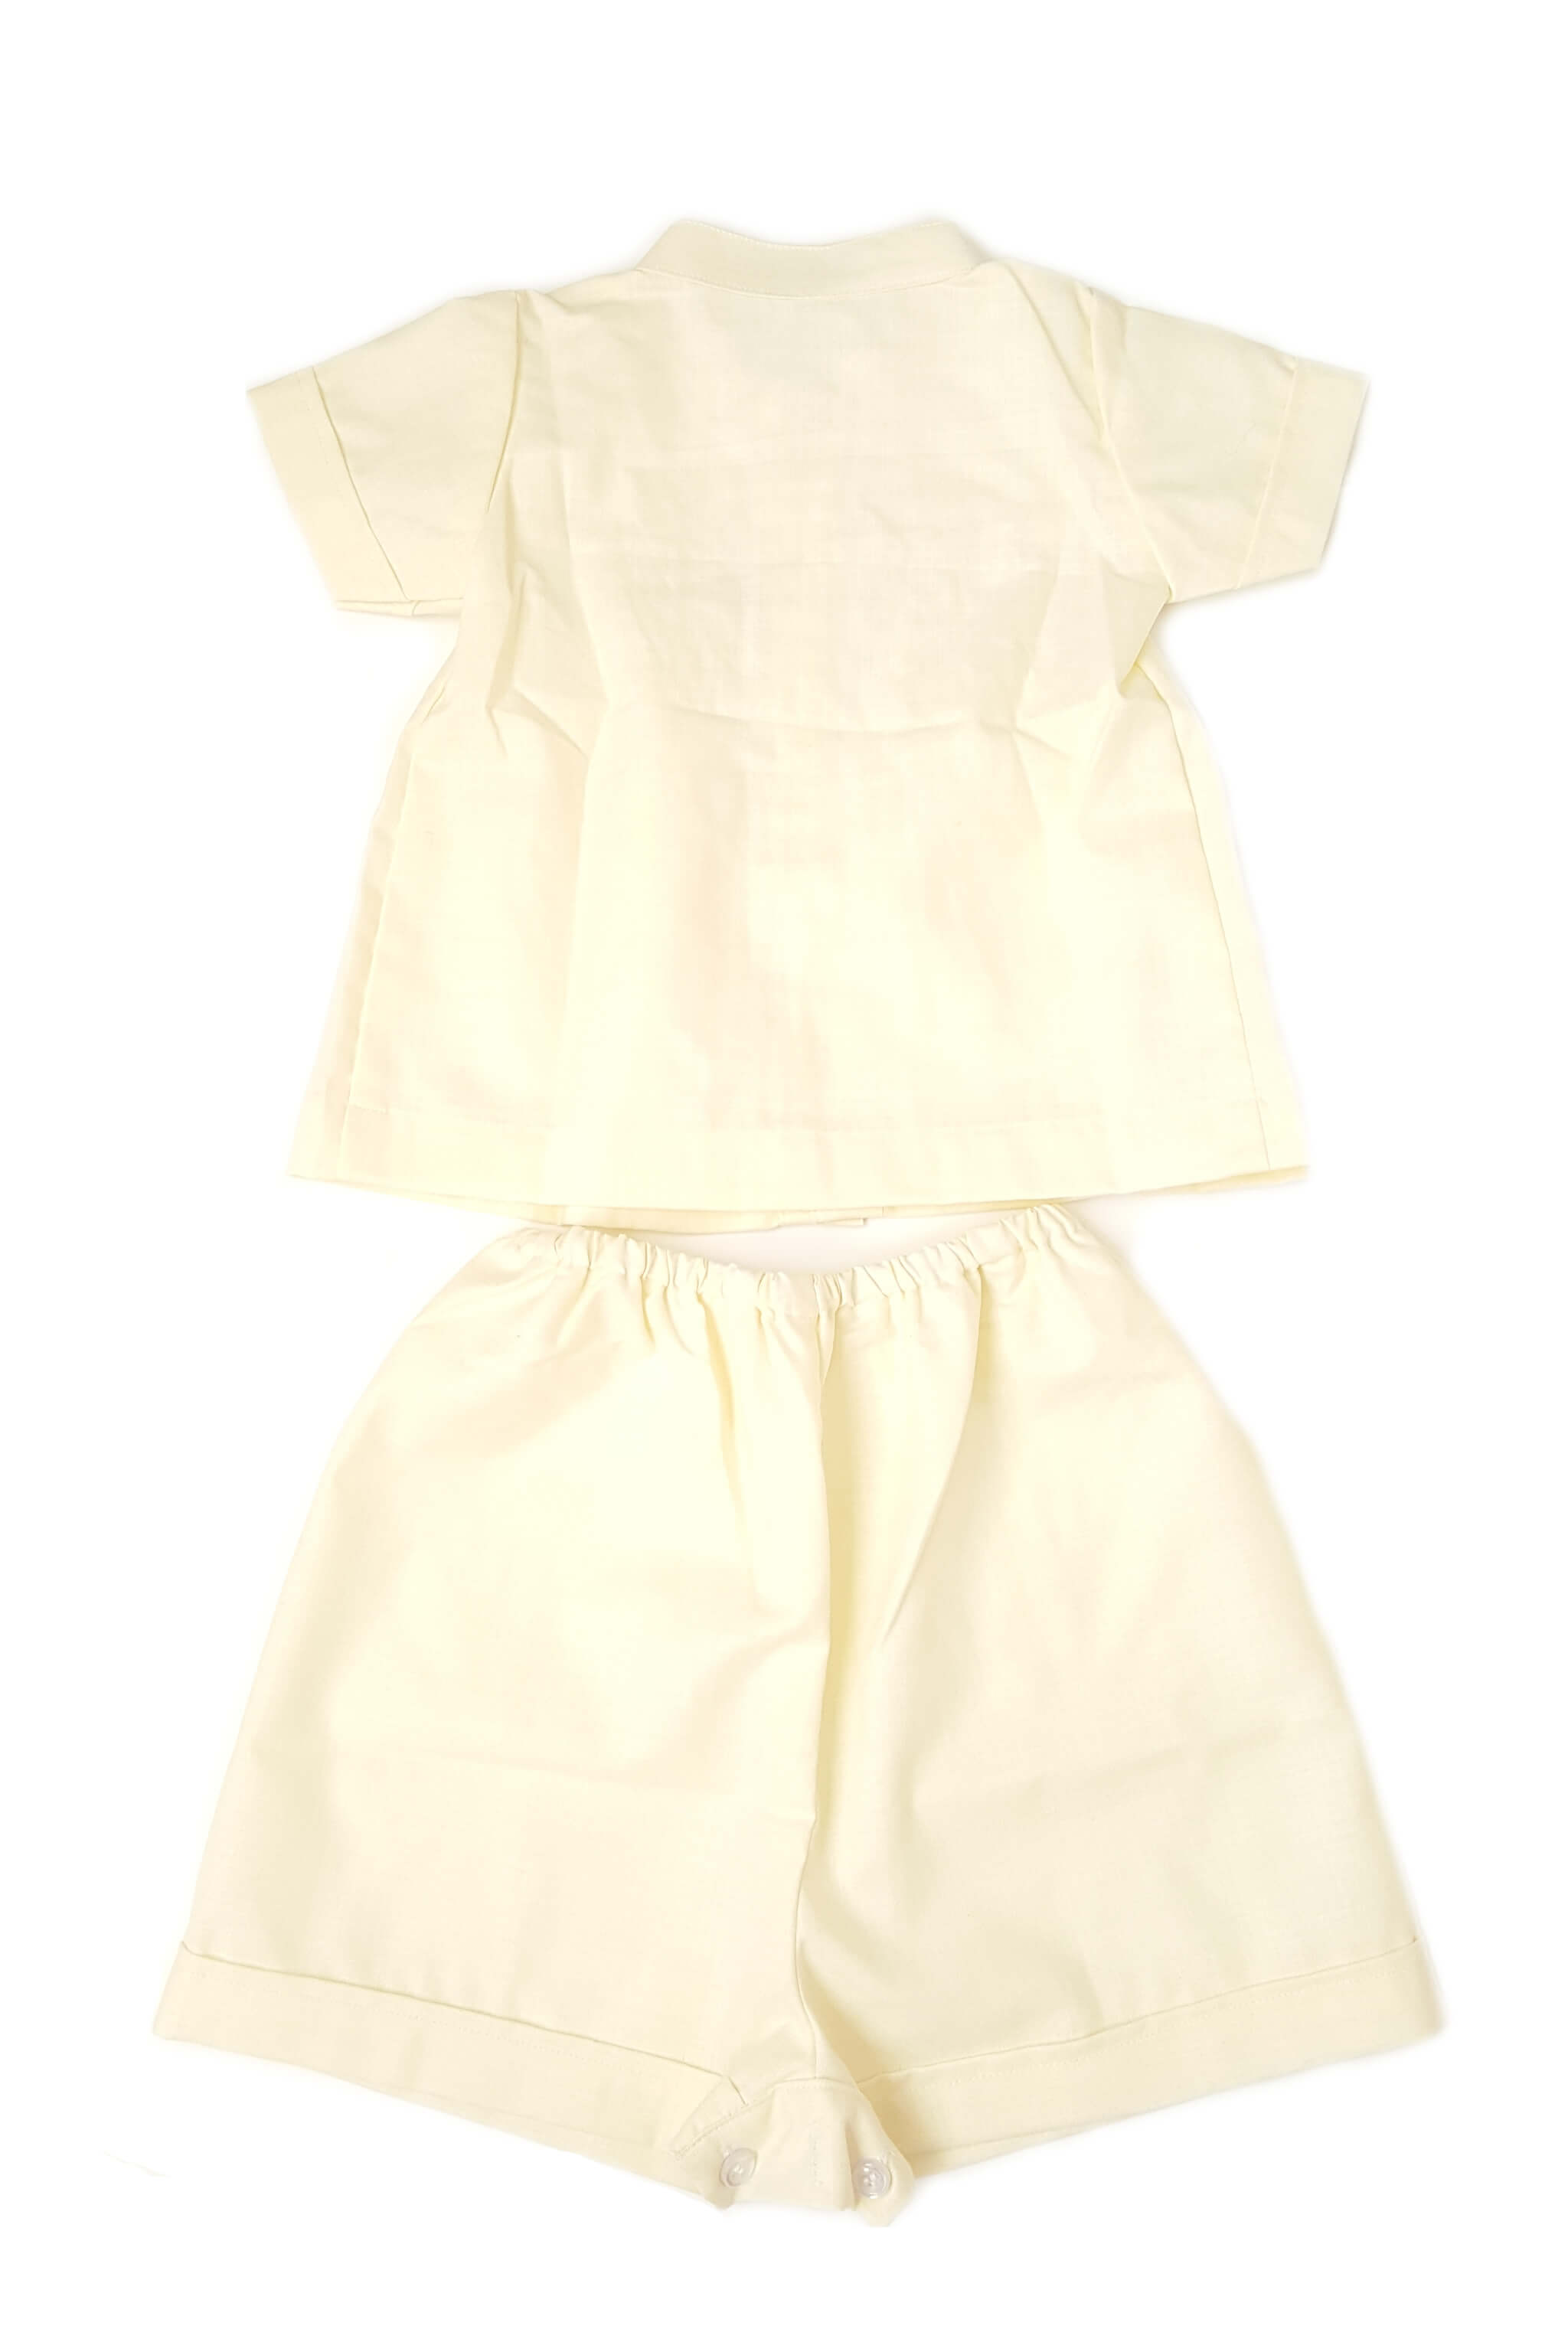 Back of Pale yellow shirt and shorts set for baby boys with Nehru collar and hand-smocked bodice and button front opening, elastic waist with bottom button opening for shorts